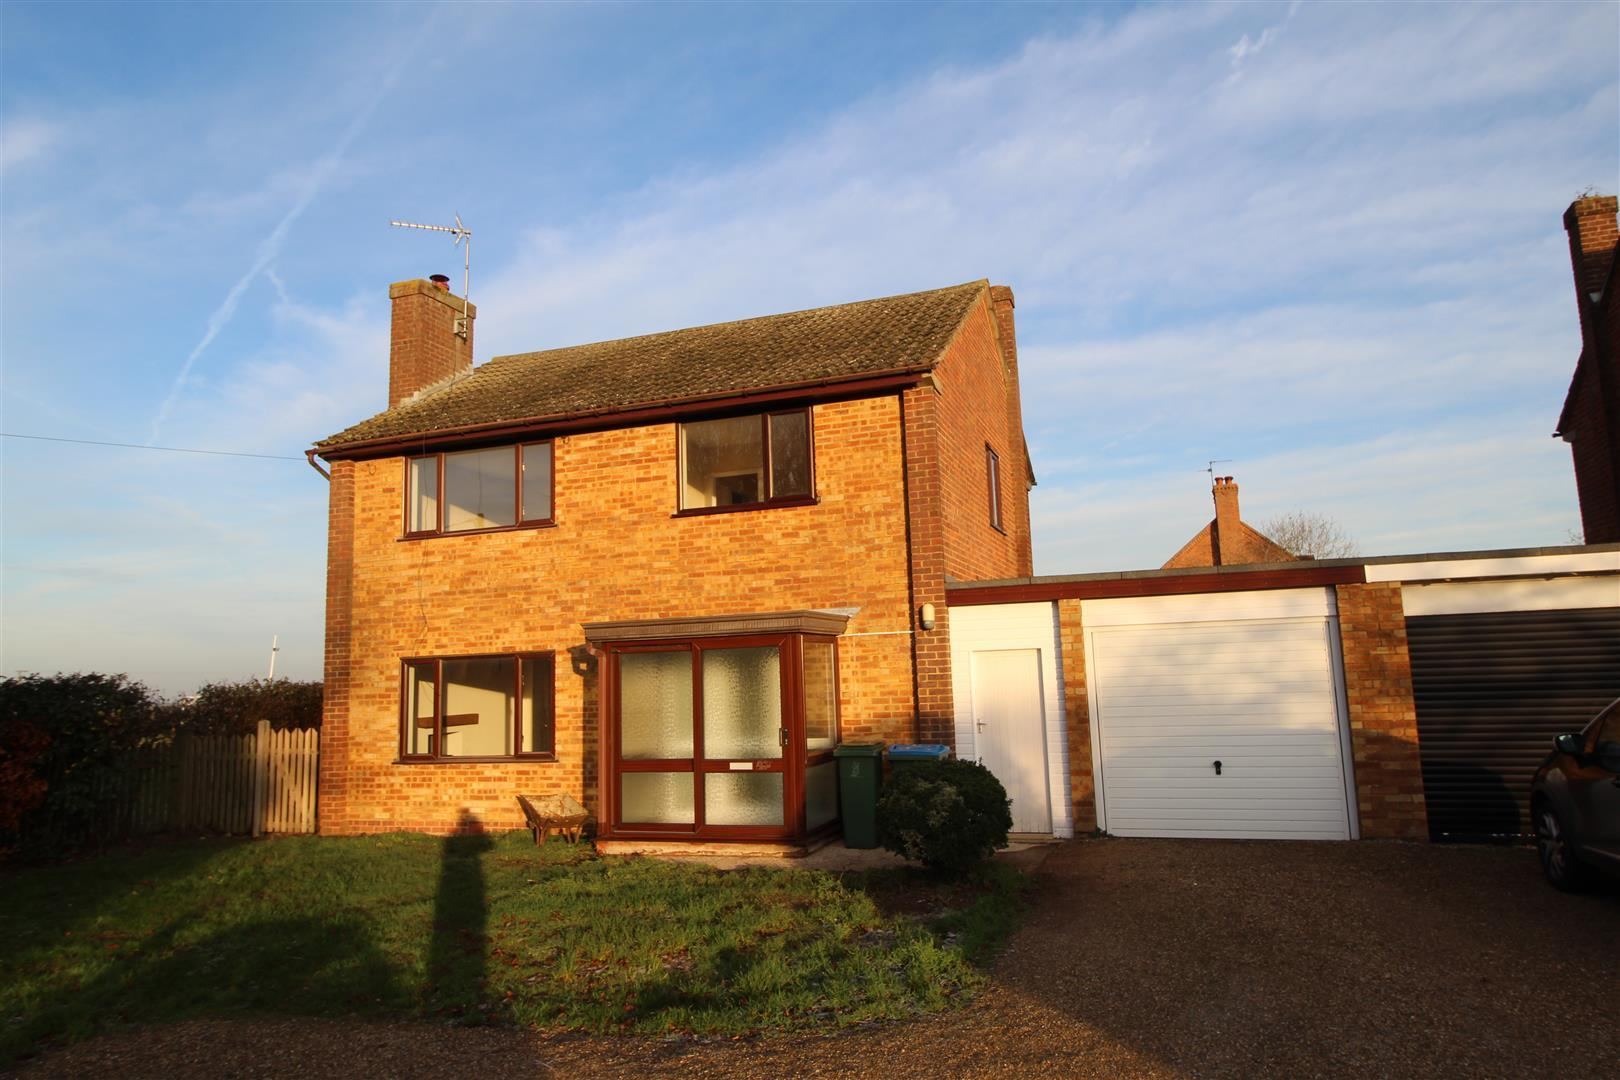 SUPERB VILLAGE LOCATION. This 3 bedroom detached house was updated throughout only a couple of years ago. The property has gas heating to radiators and Upvc double glazing and briefly comprises: Entrance porch & hall, lounge/diner with a log burner, kitch